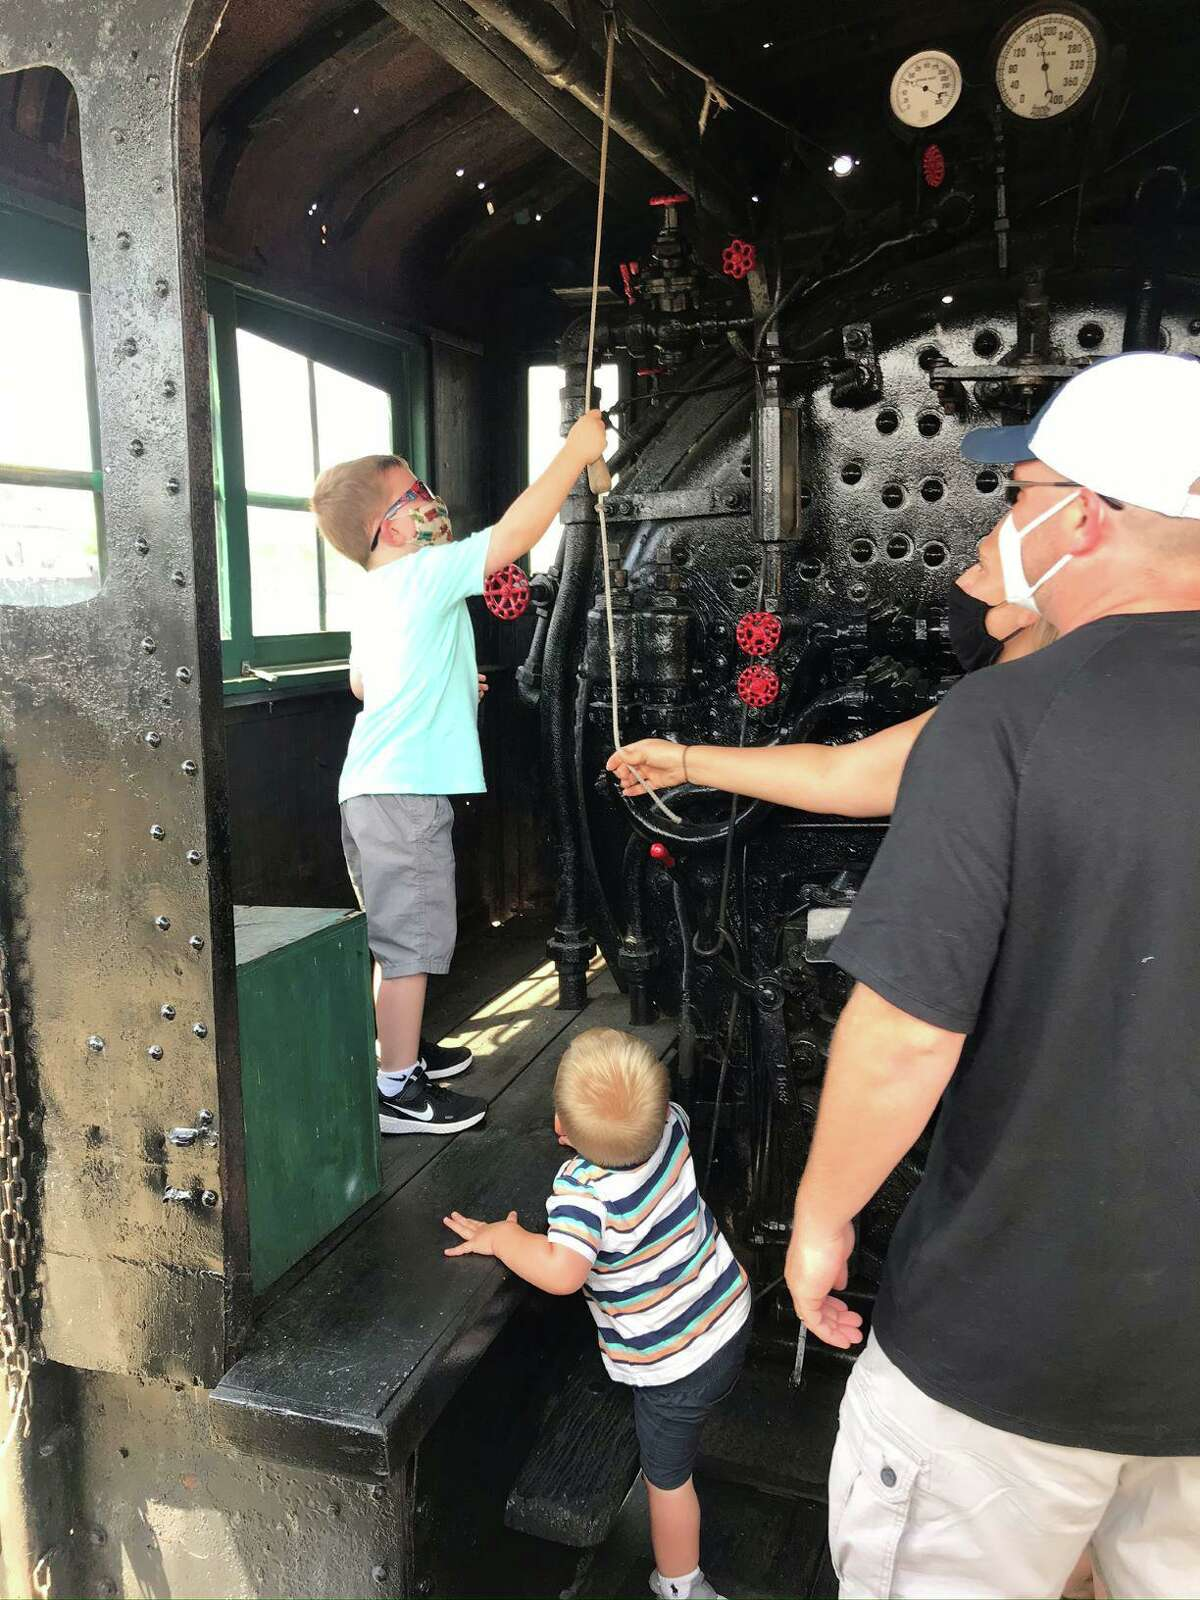 Visitors explore an exhibit at the Danbury Railway Museum. Jackson Pettigrew, 5, rings the 1907 steam locomotive bell while his parents, Dan and Michelle, and brother, Colton, 2, give moral support. The family was visiting from Poughkeepsie, N.Y.